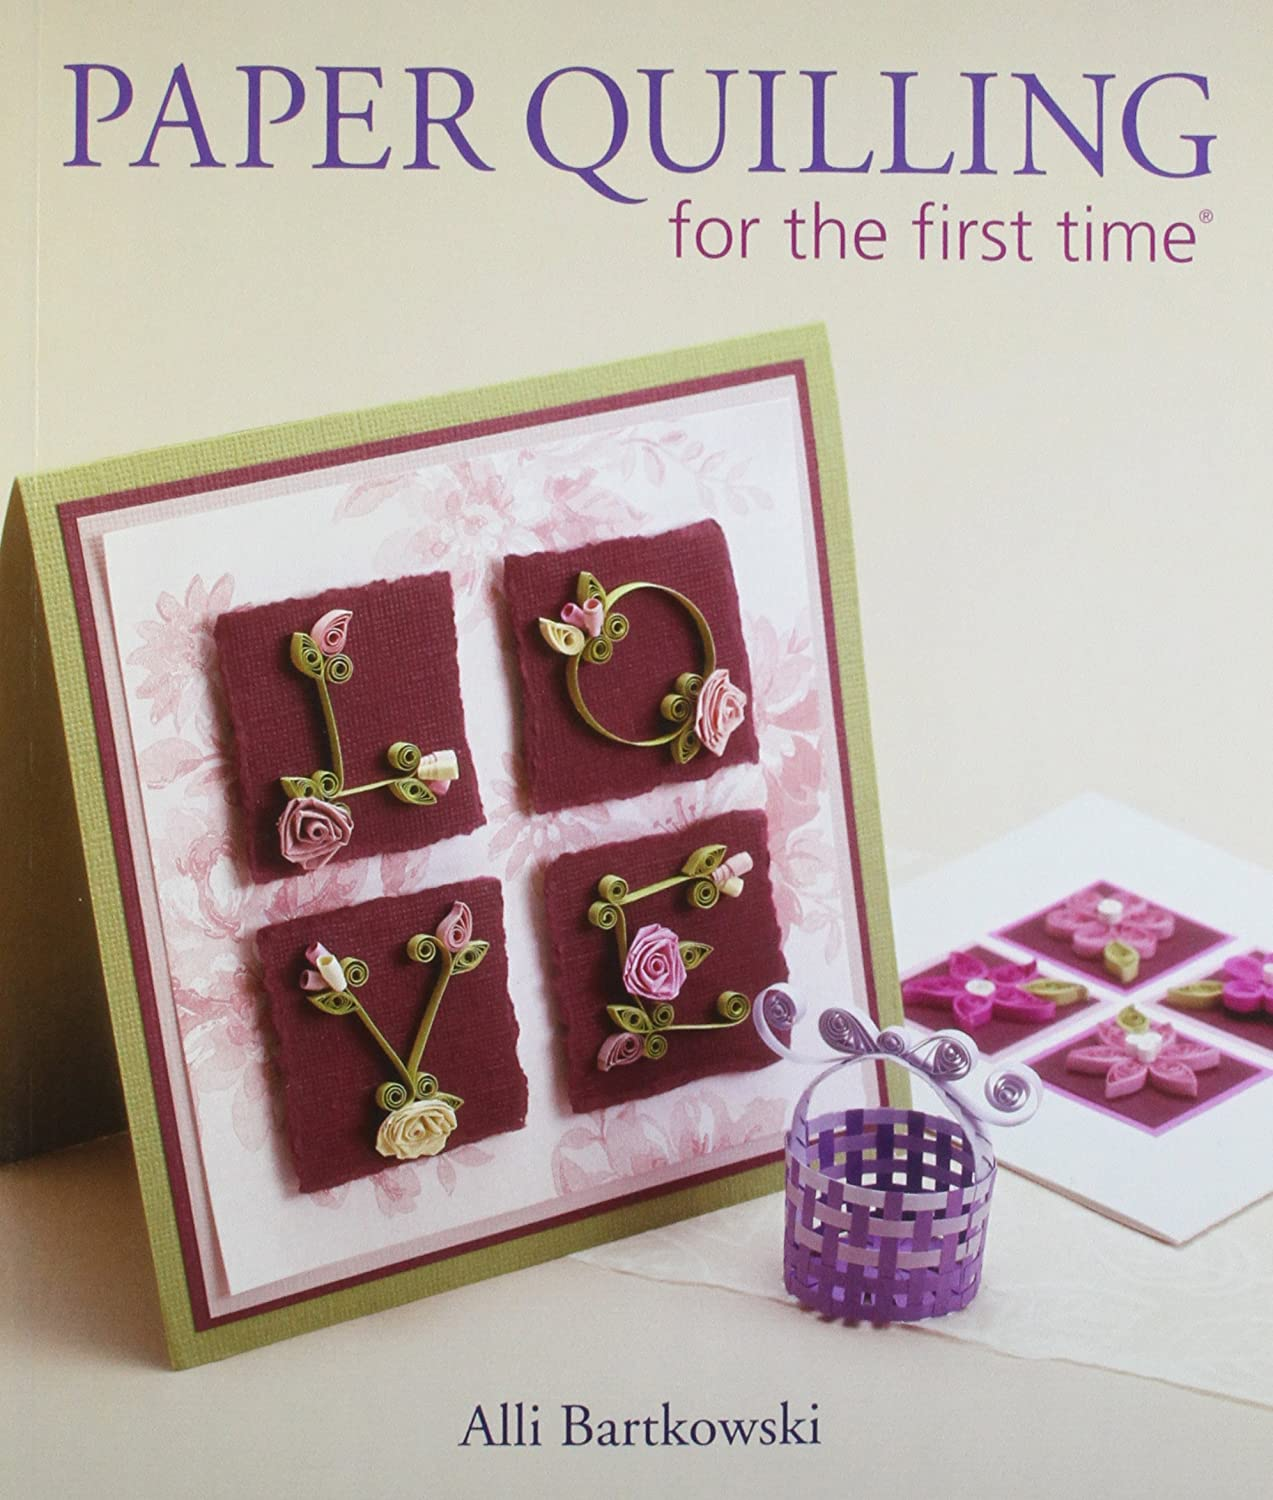 The Art of Paper Quilling Book Lark Books Paper Quilling For